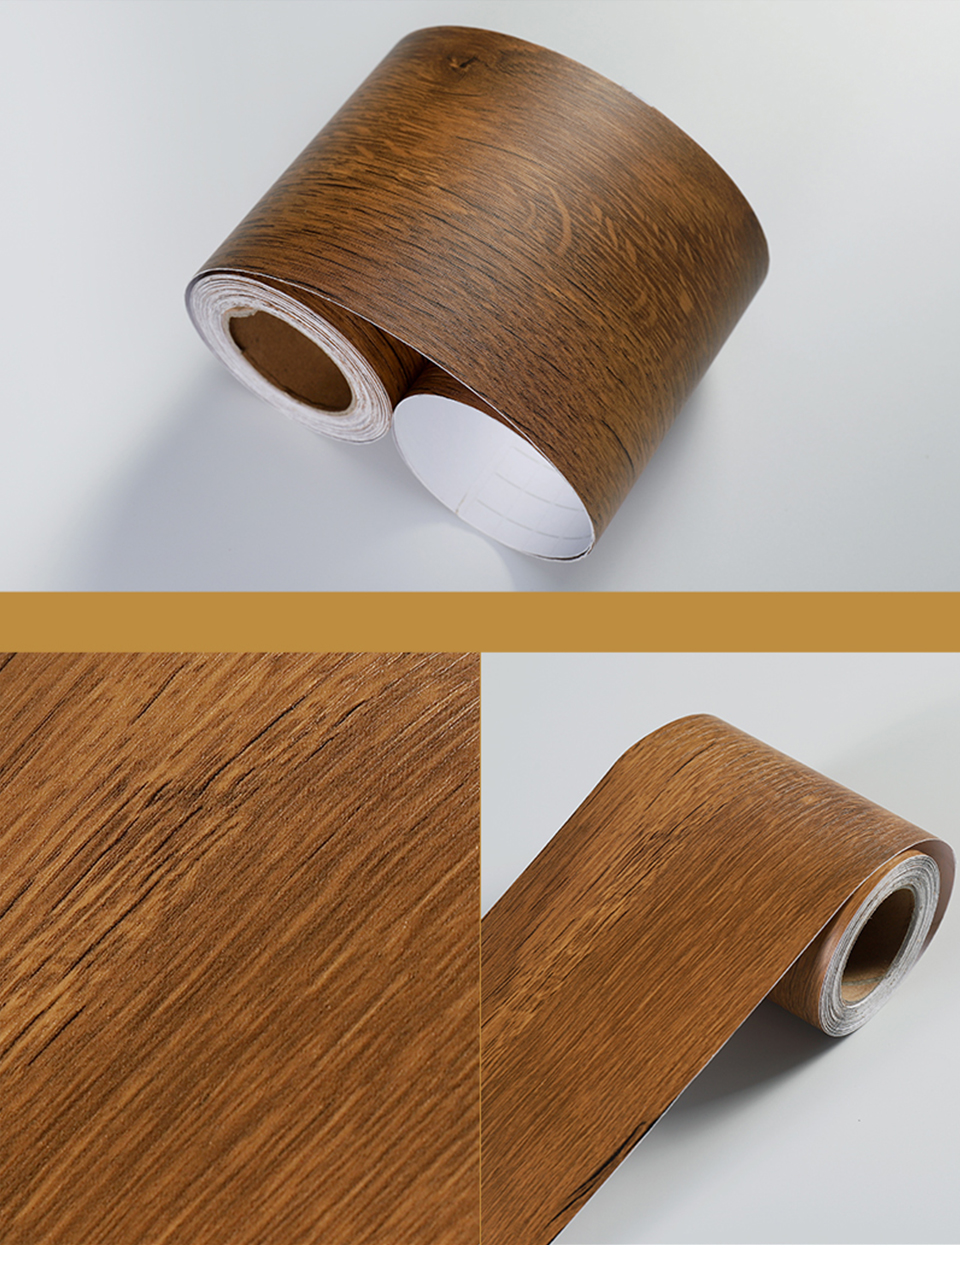 Wood Self Adhesive Window Decal Living Room Floor Border Skirting Contact Paper Waterproof Waist Line Wallpaper Home Improvement H1fc10e7480d94548bca0326b80752543R